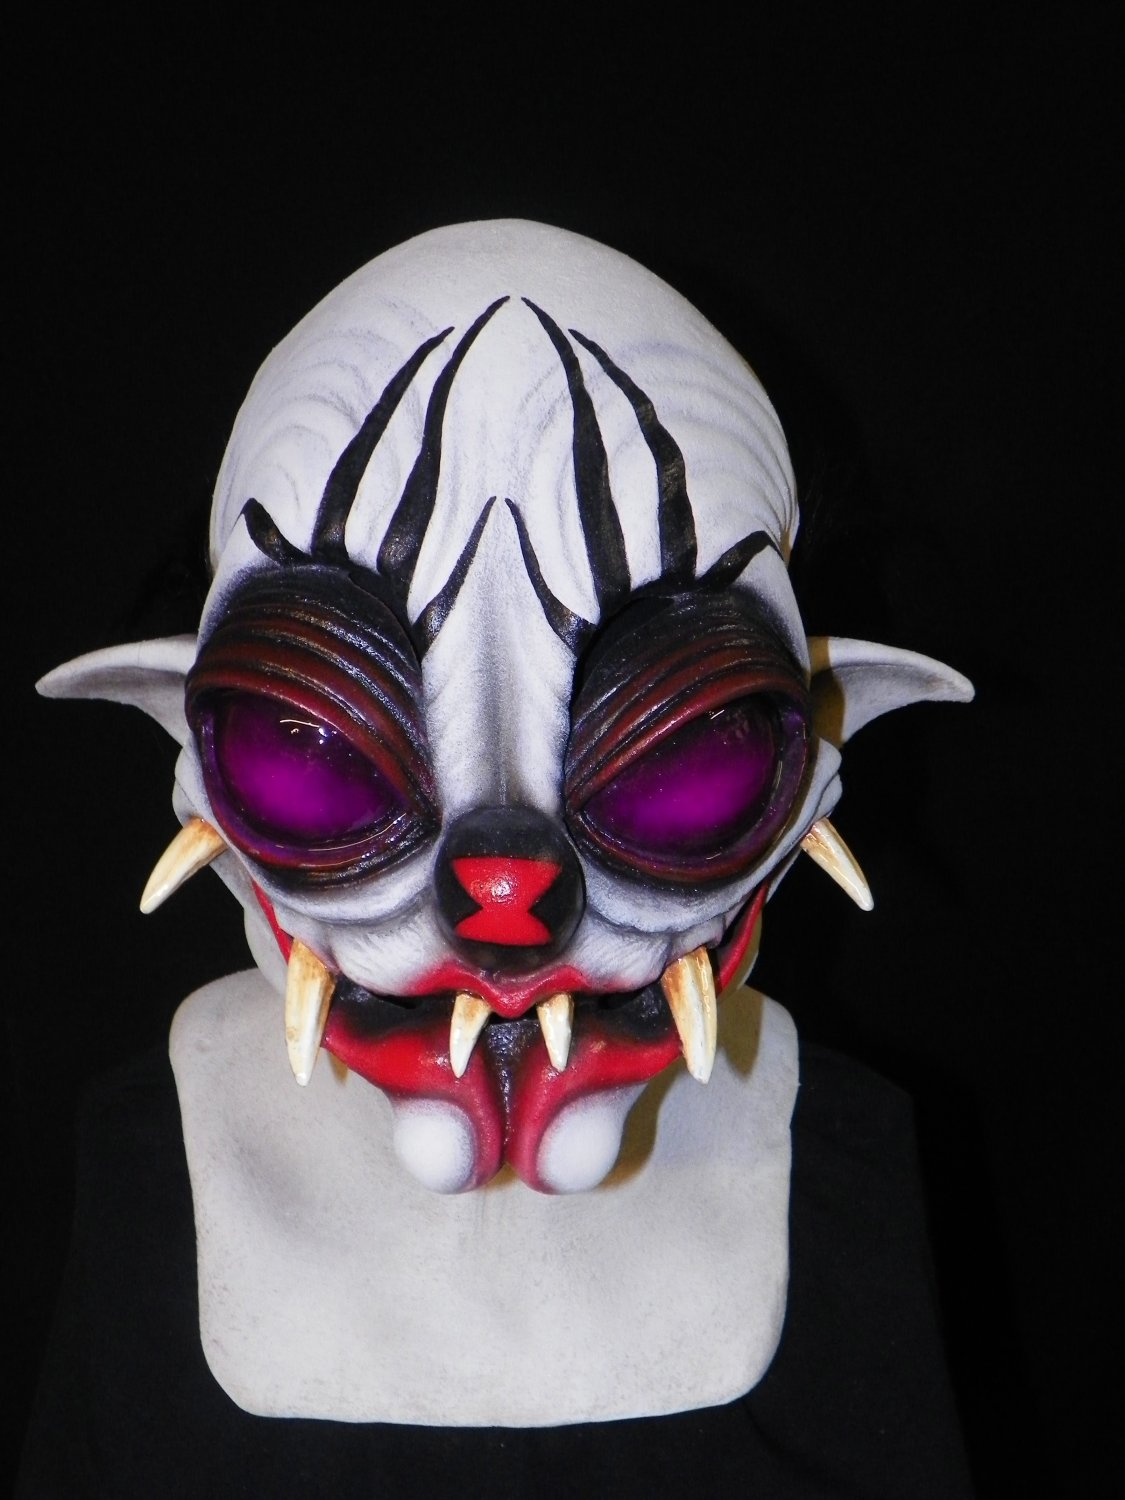 Black Widow Spider-Man Clown of Death Fanged Monster Nightmare Carnival Scary Halloween Mask